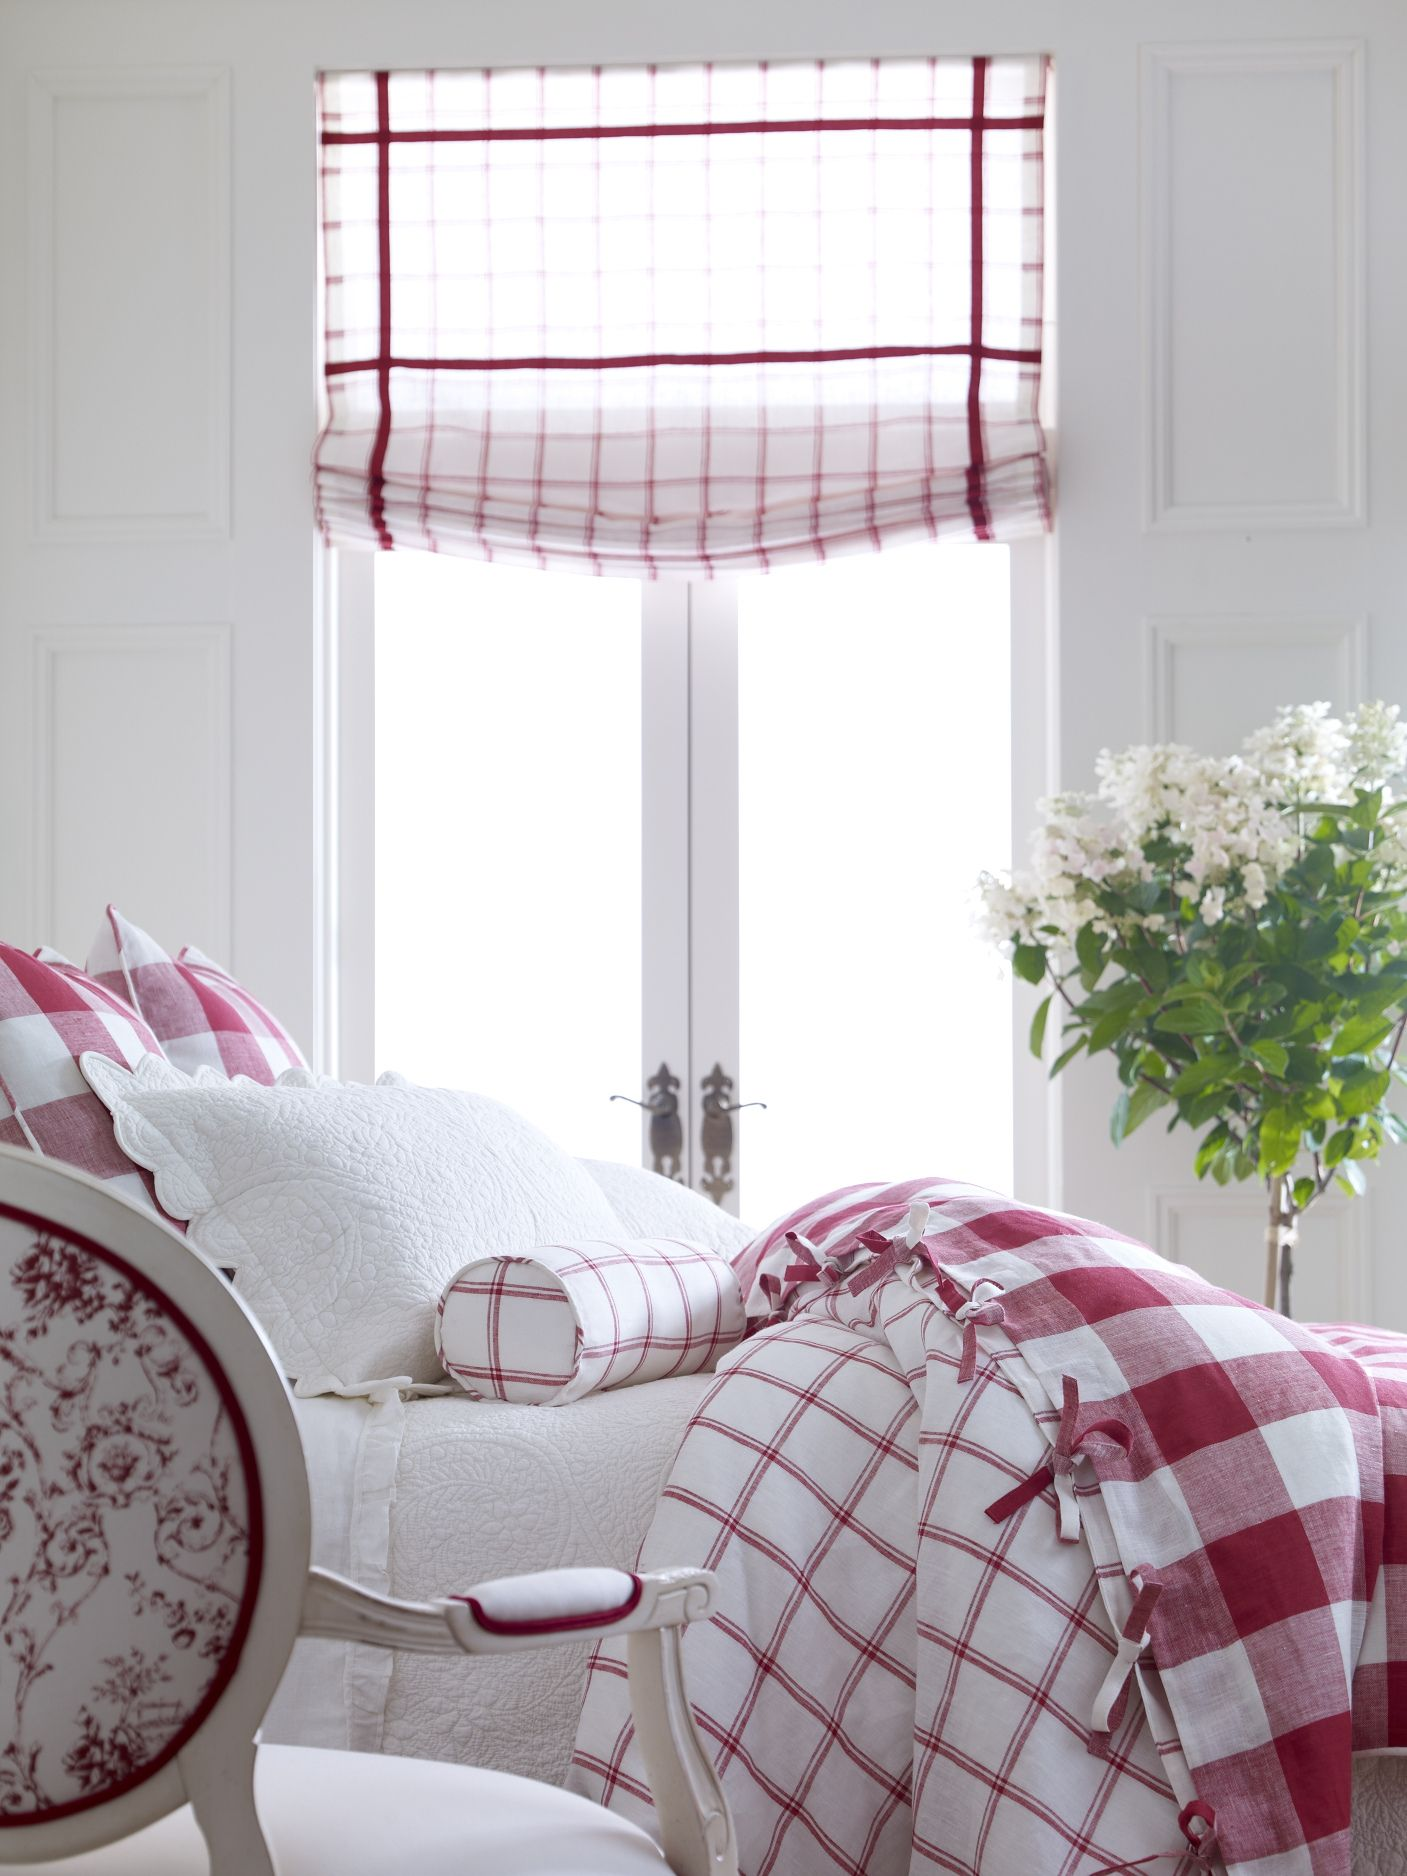 Ethan allen bedrooms red and white bedrooms cortinaje